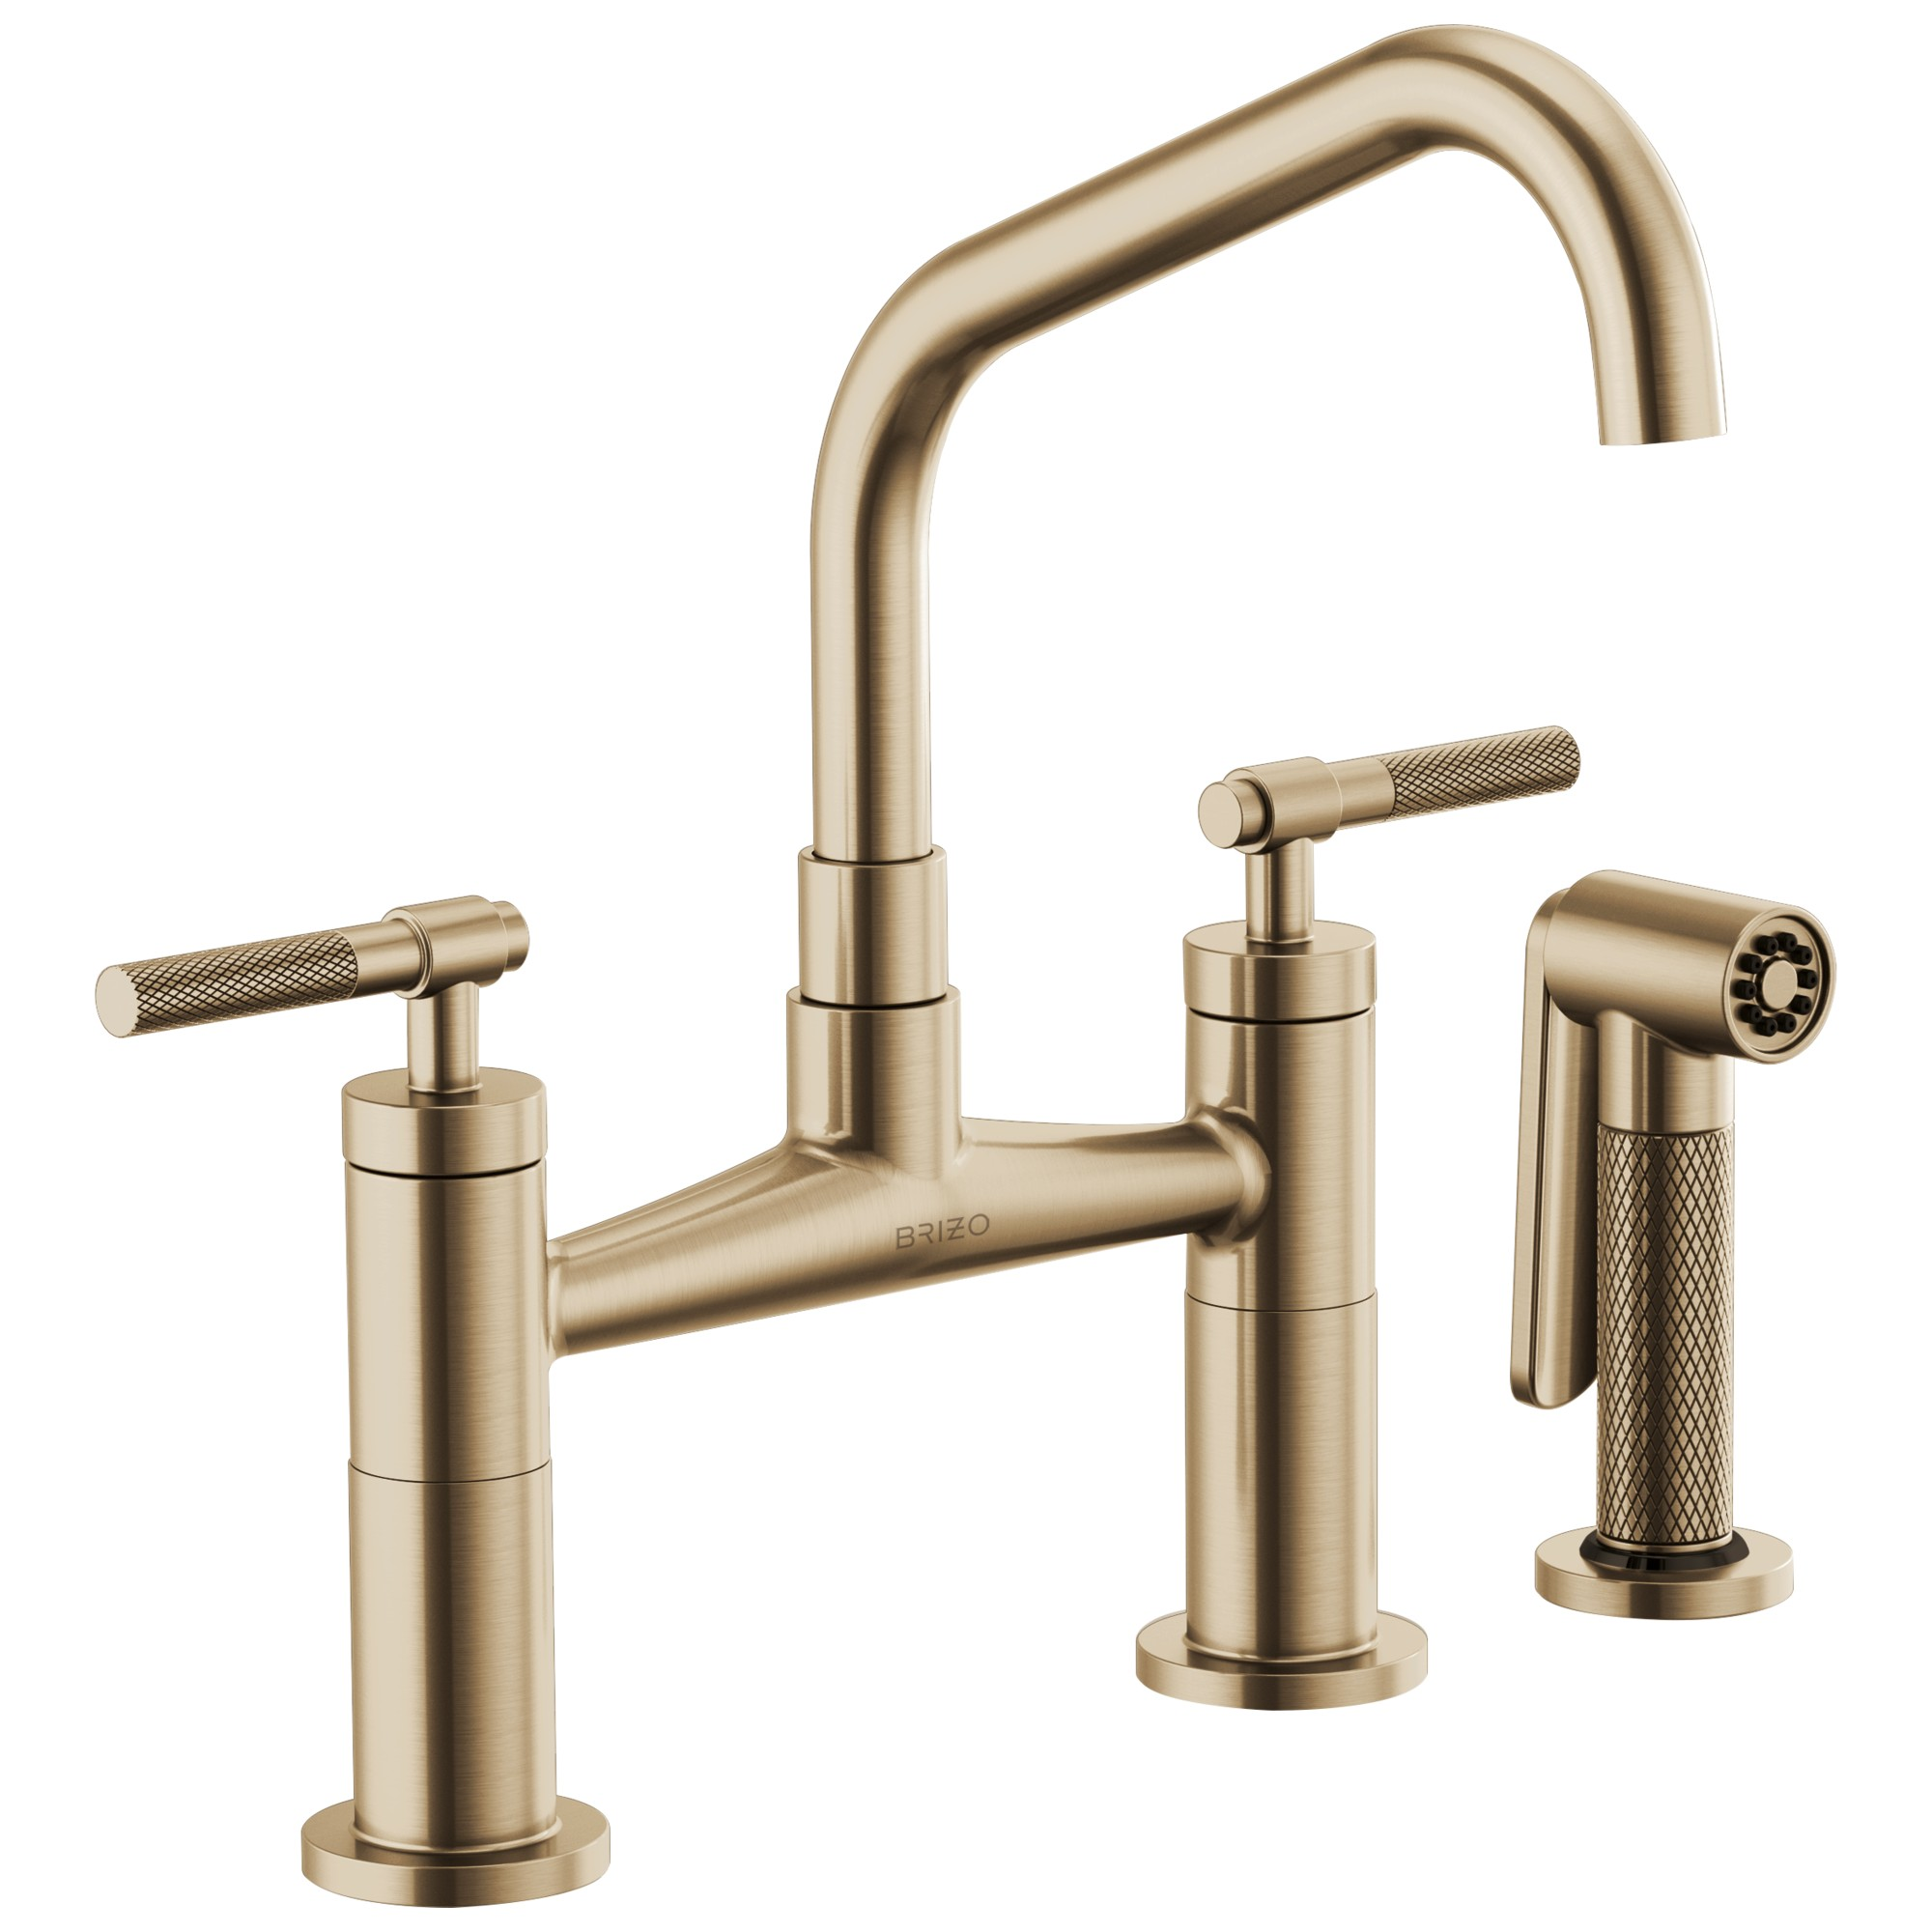 Brizo 62563LF-GL Litze Bridge Faucet with Angled Spout and Knurled Handle - Luxe Gold